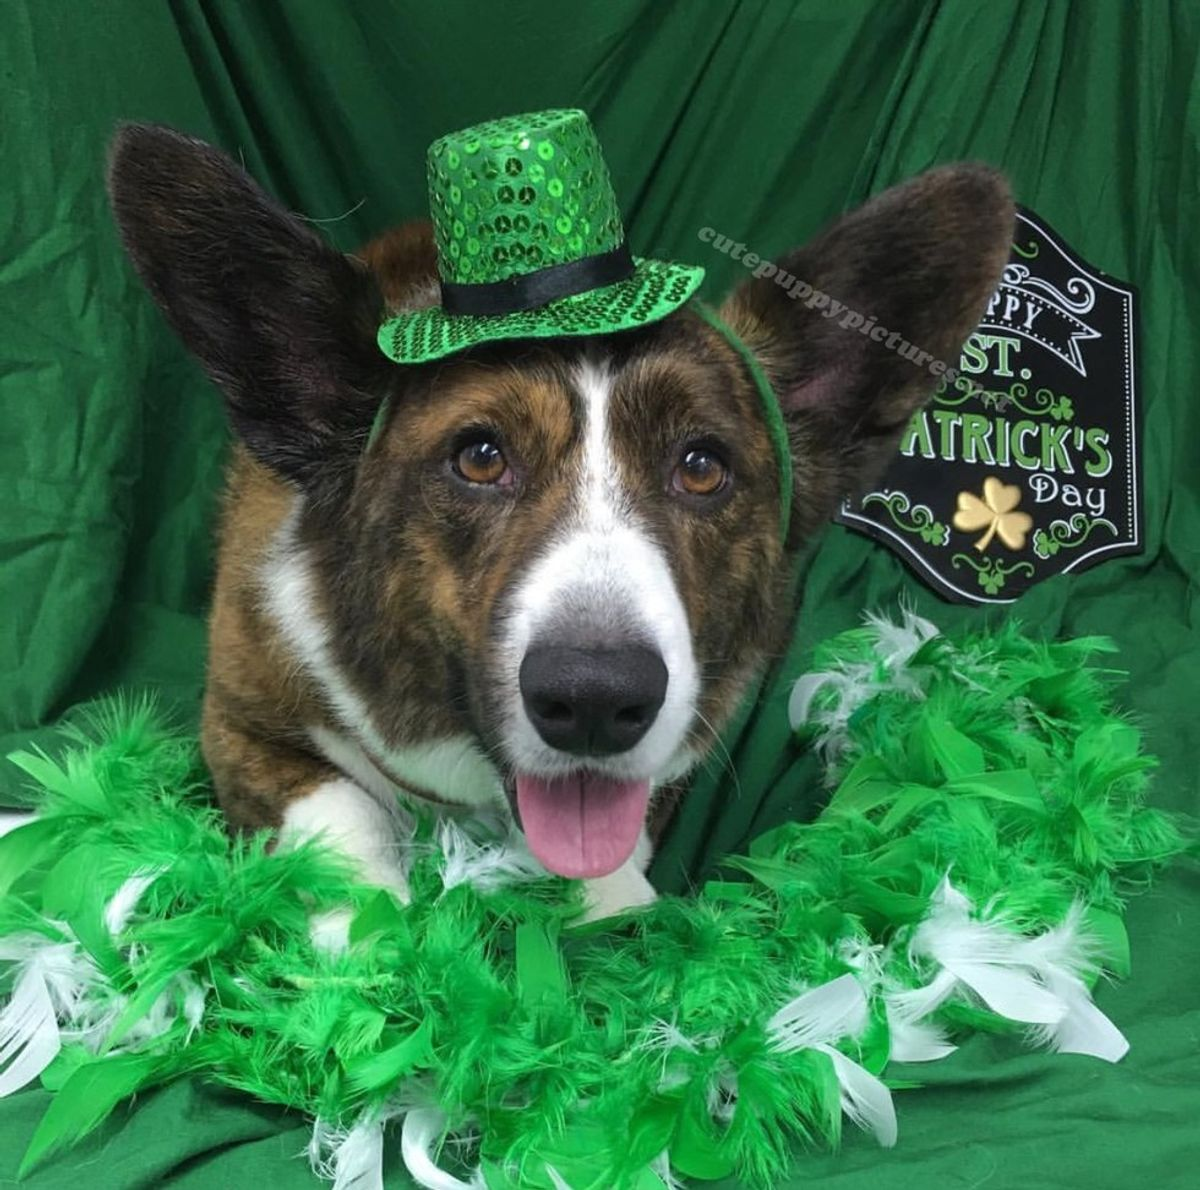 26 St. Patrick's Day Facts And Trivia